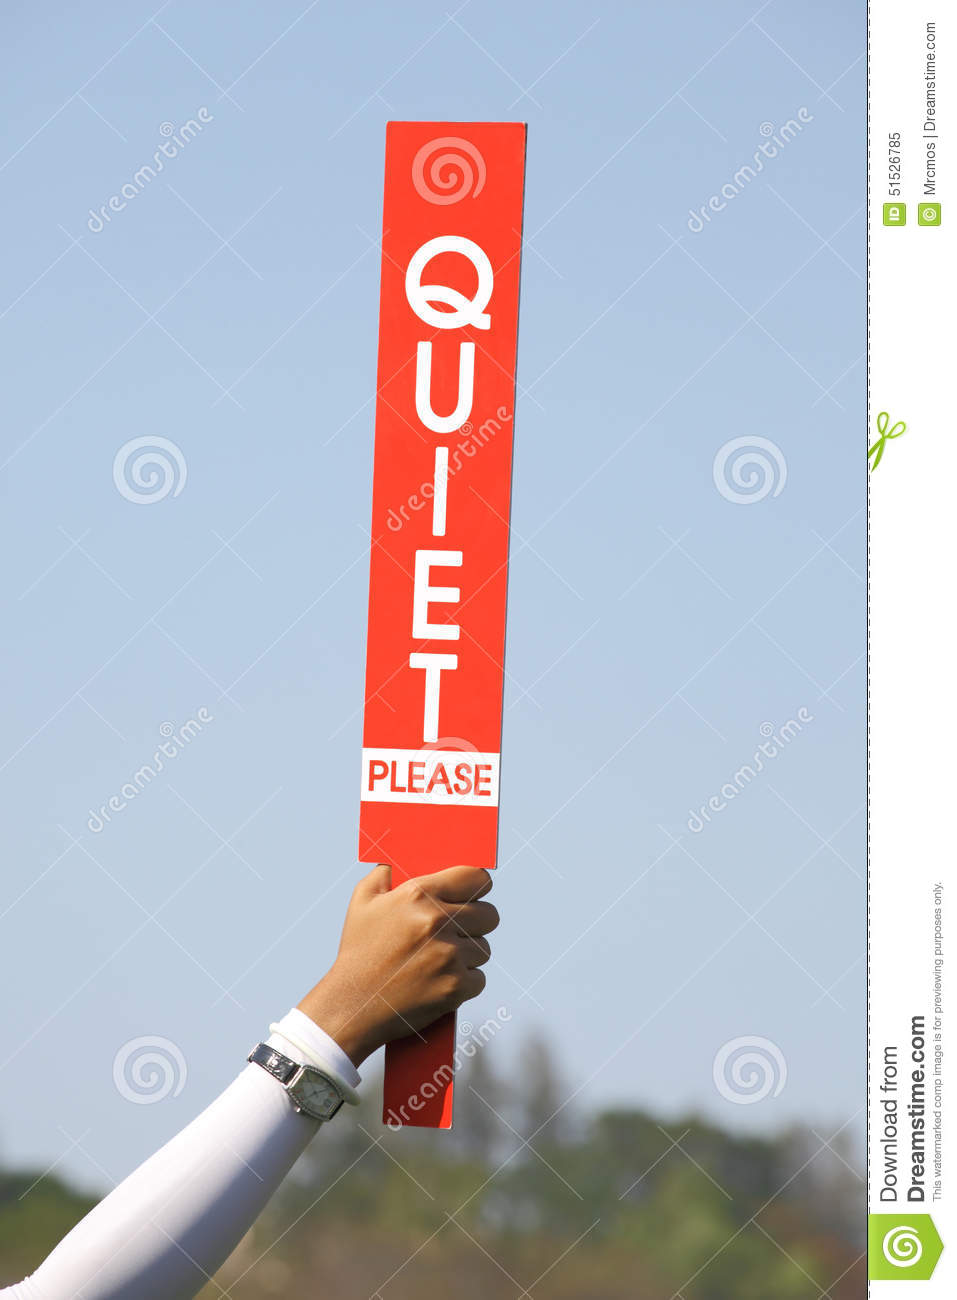 The Quiet Please Sign Was Held Up By Volunteer In Golf